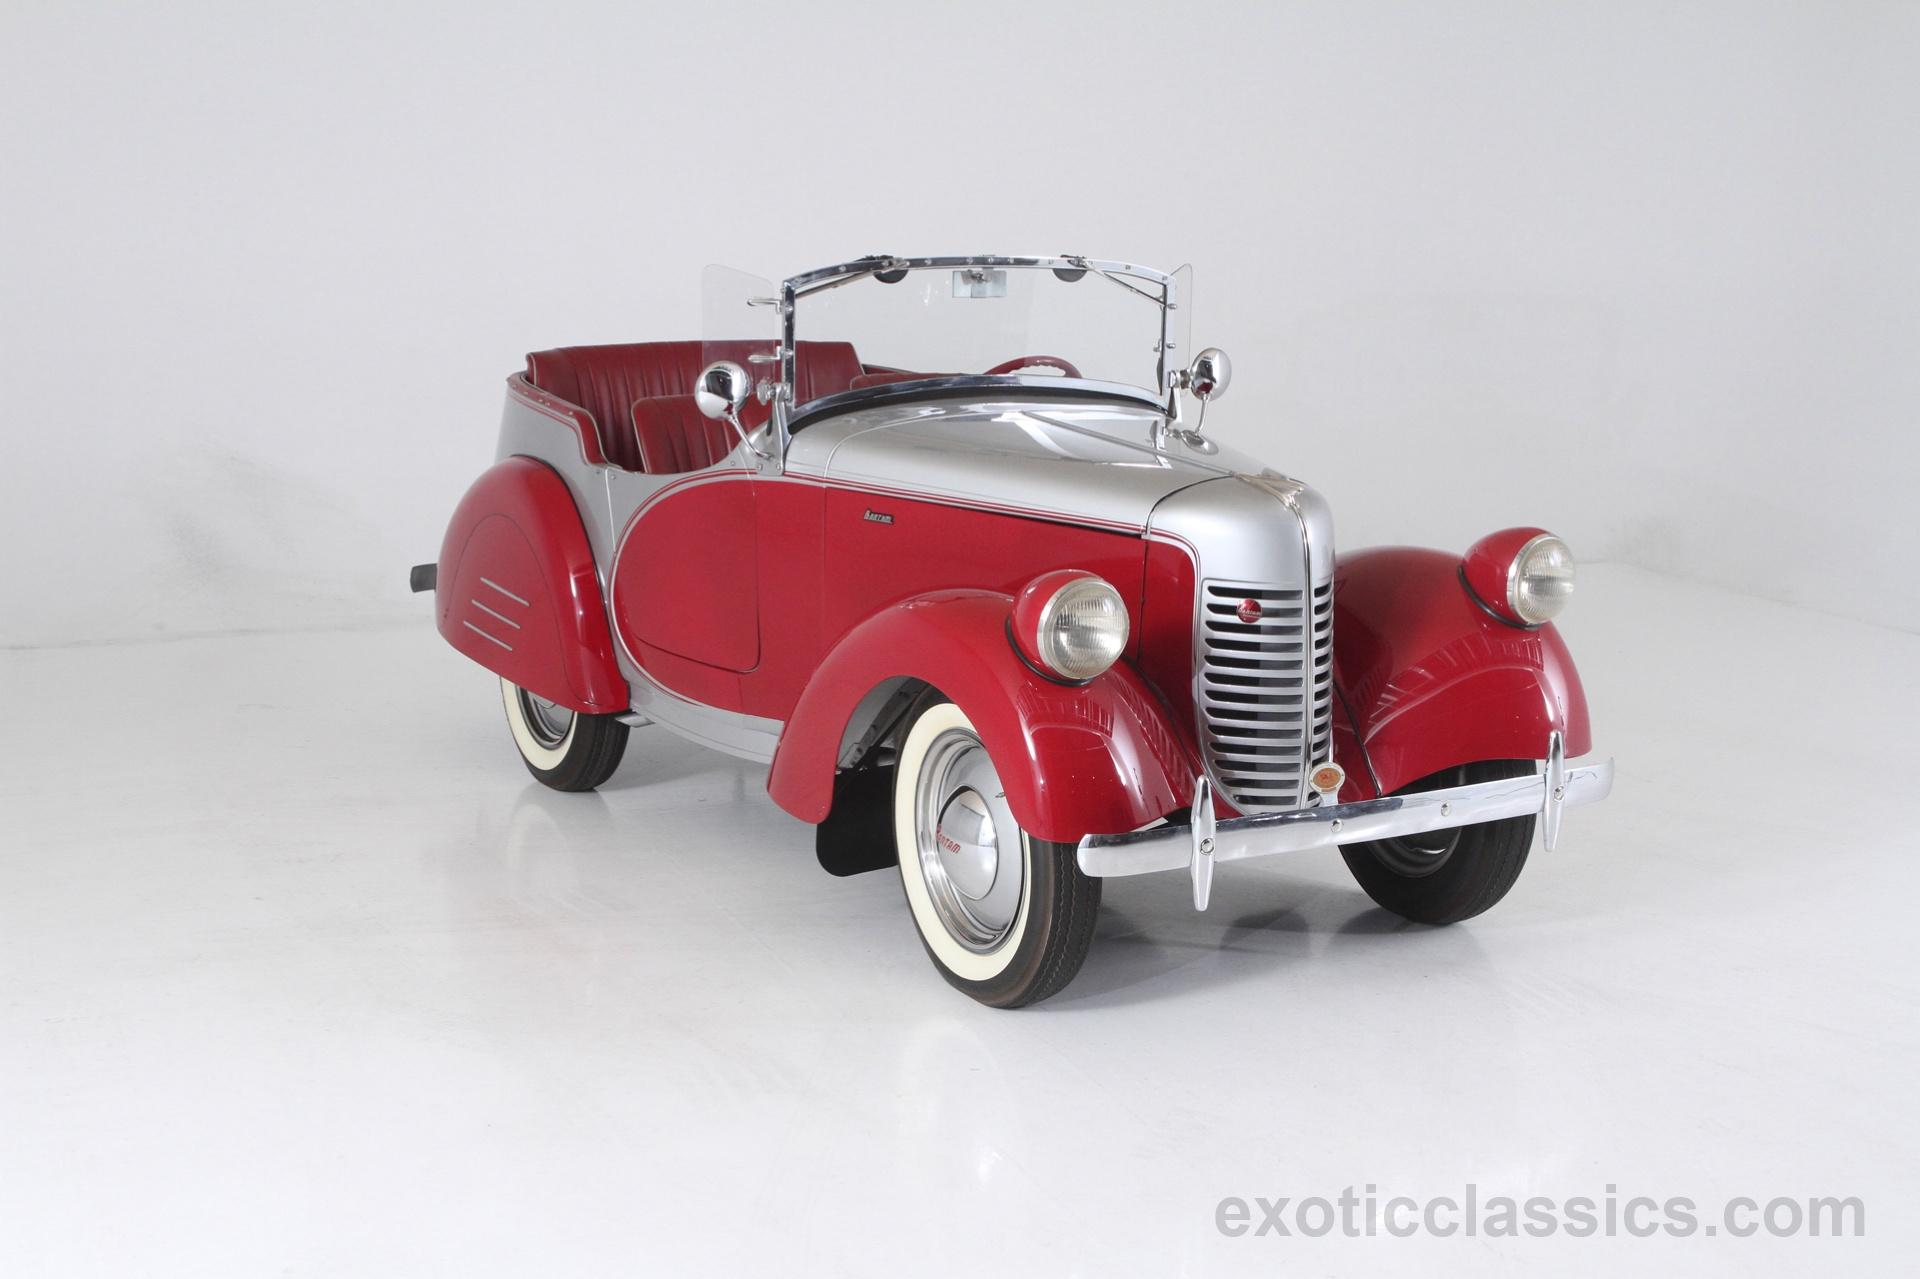 1939 Bantam Model 60 Speedster - Exotic and Classic Car Dealership ...